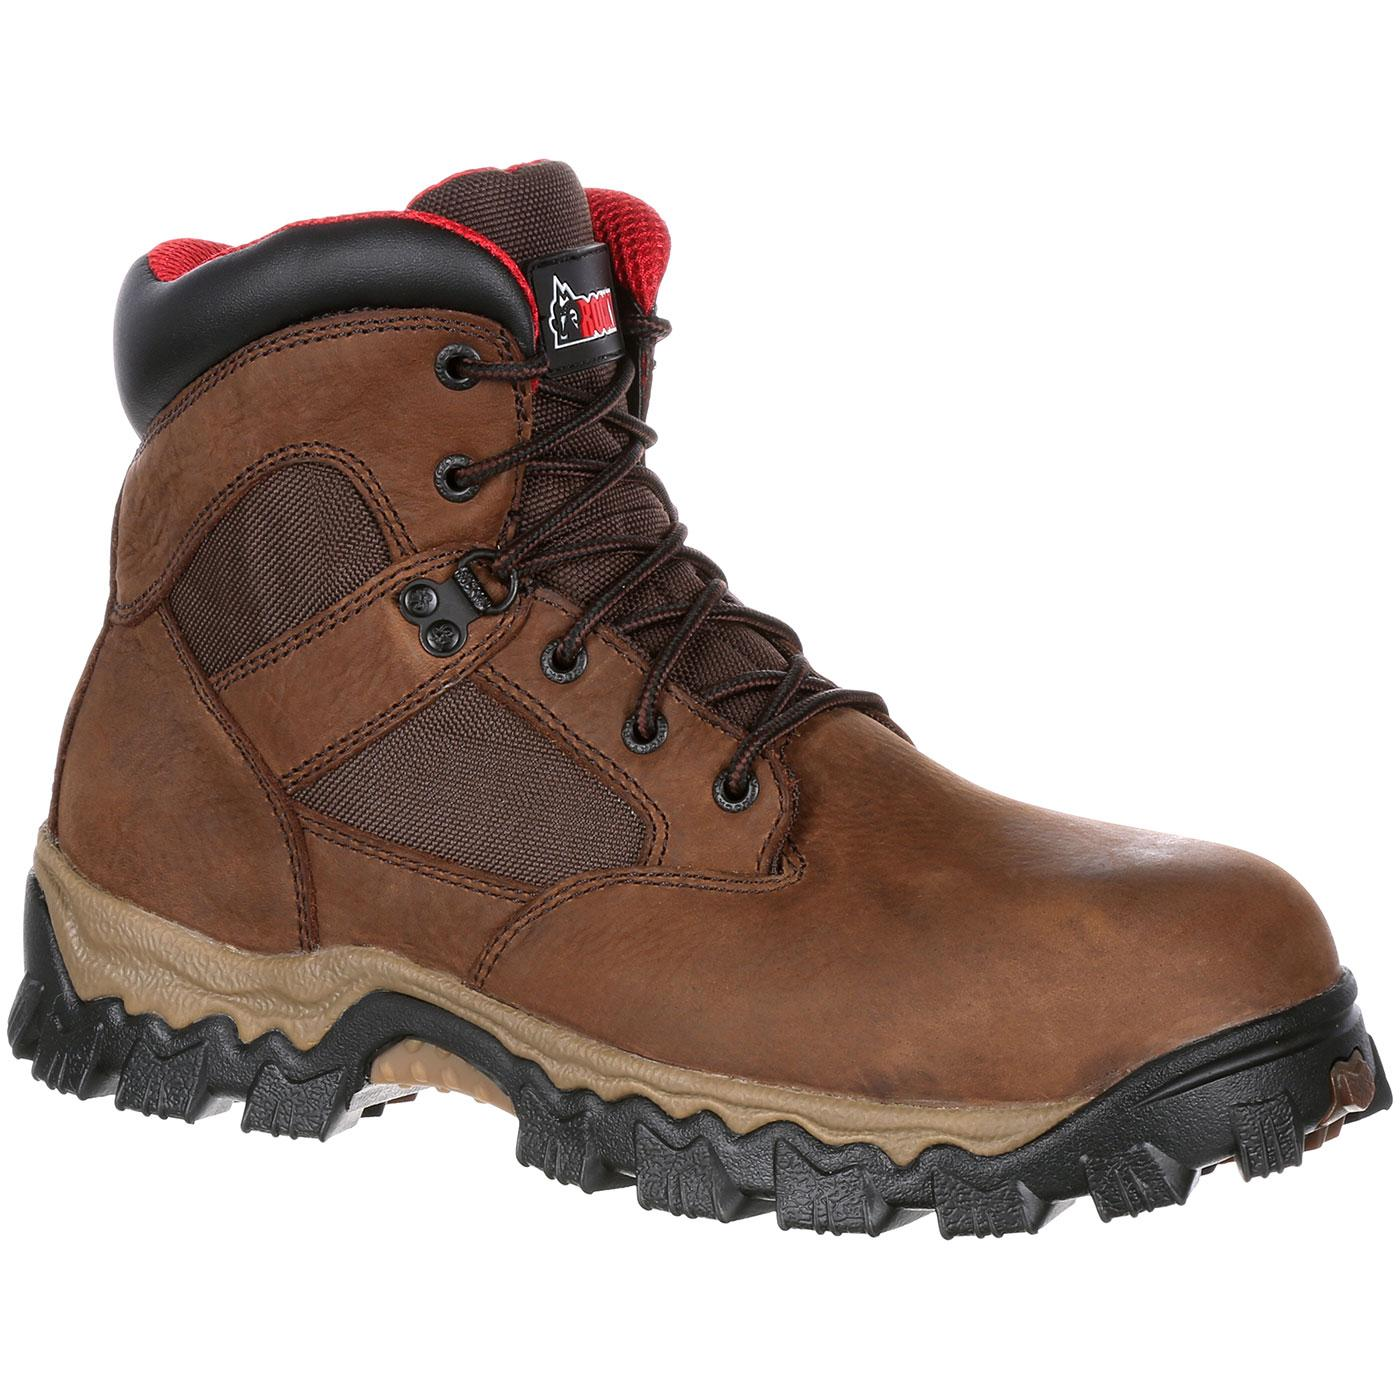 Composite Toe Boots • All Composite Toe Work Boots